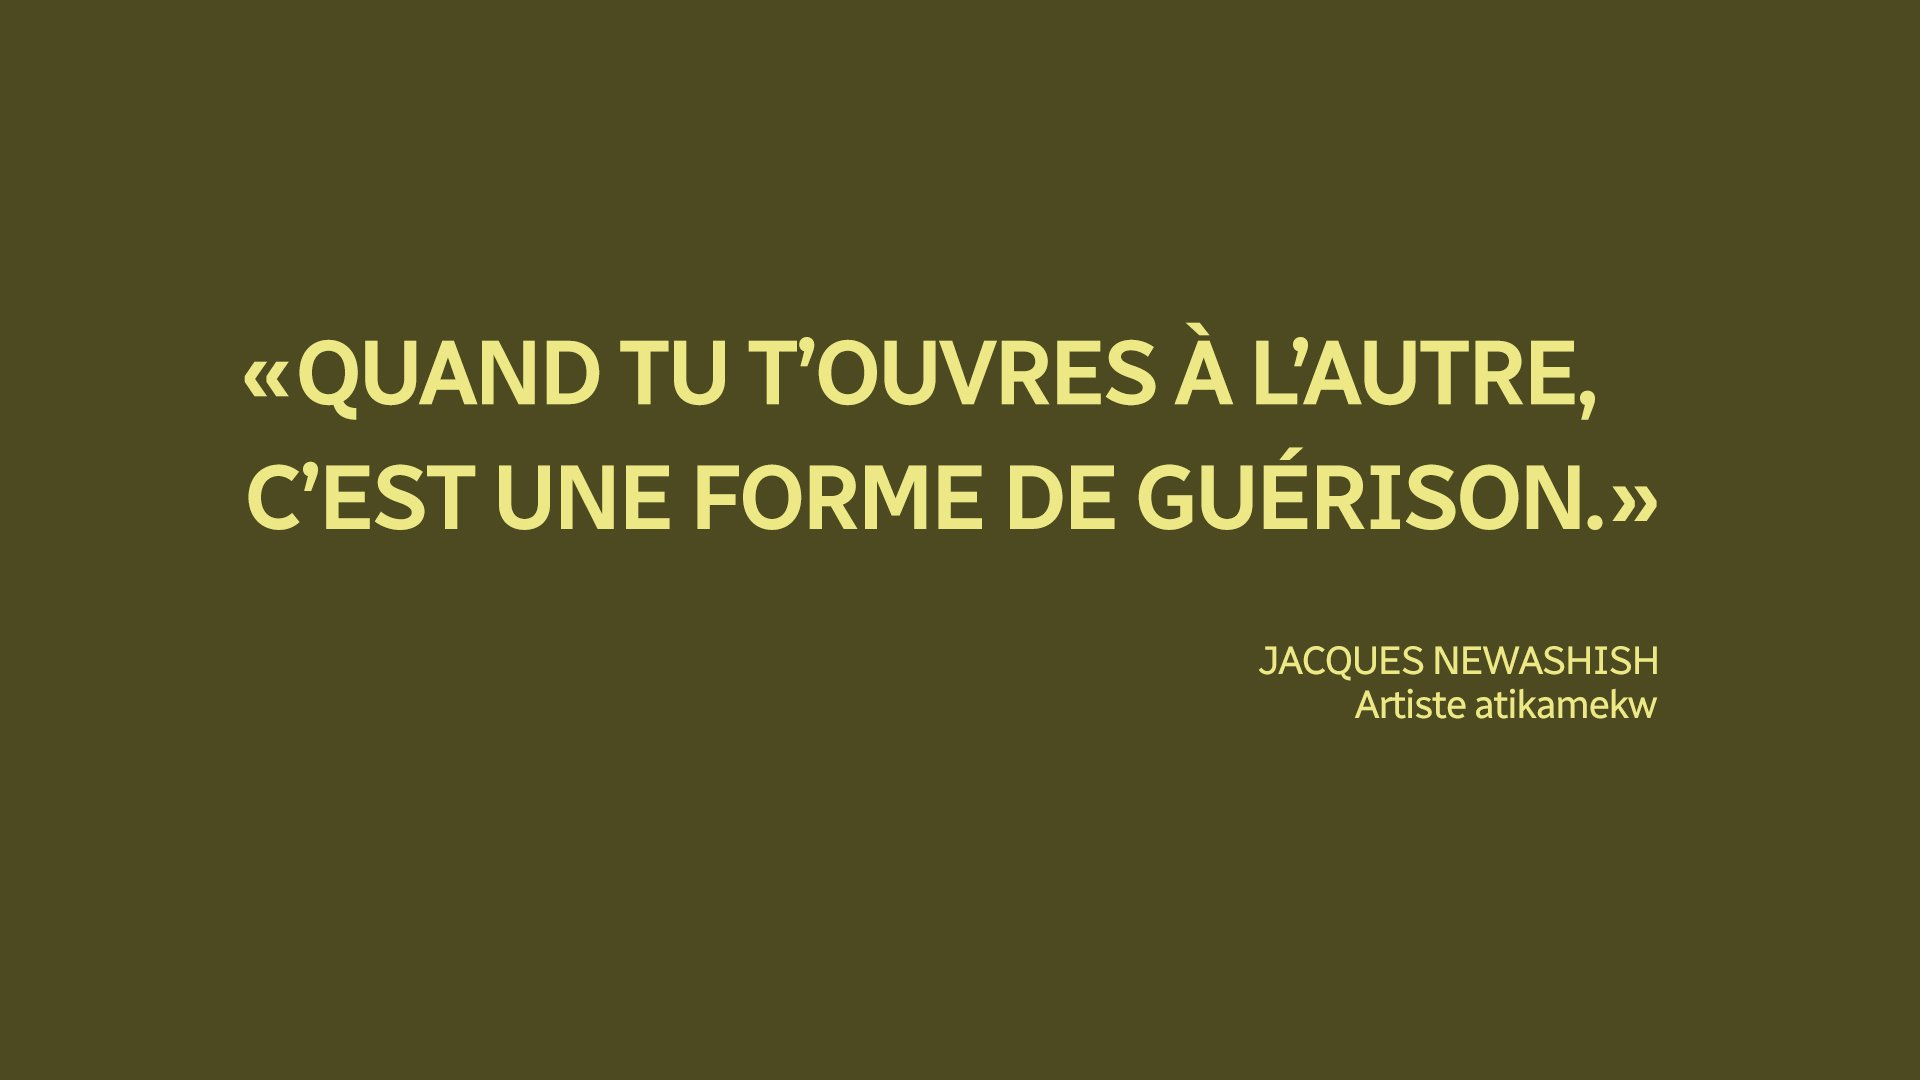 Jacques Newashish